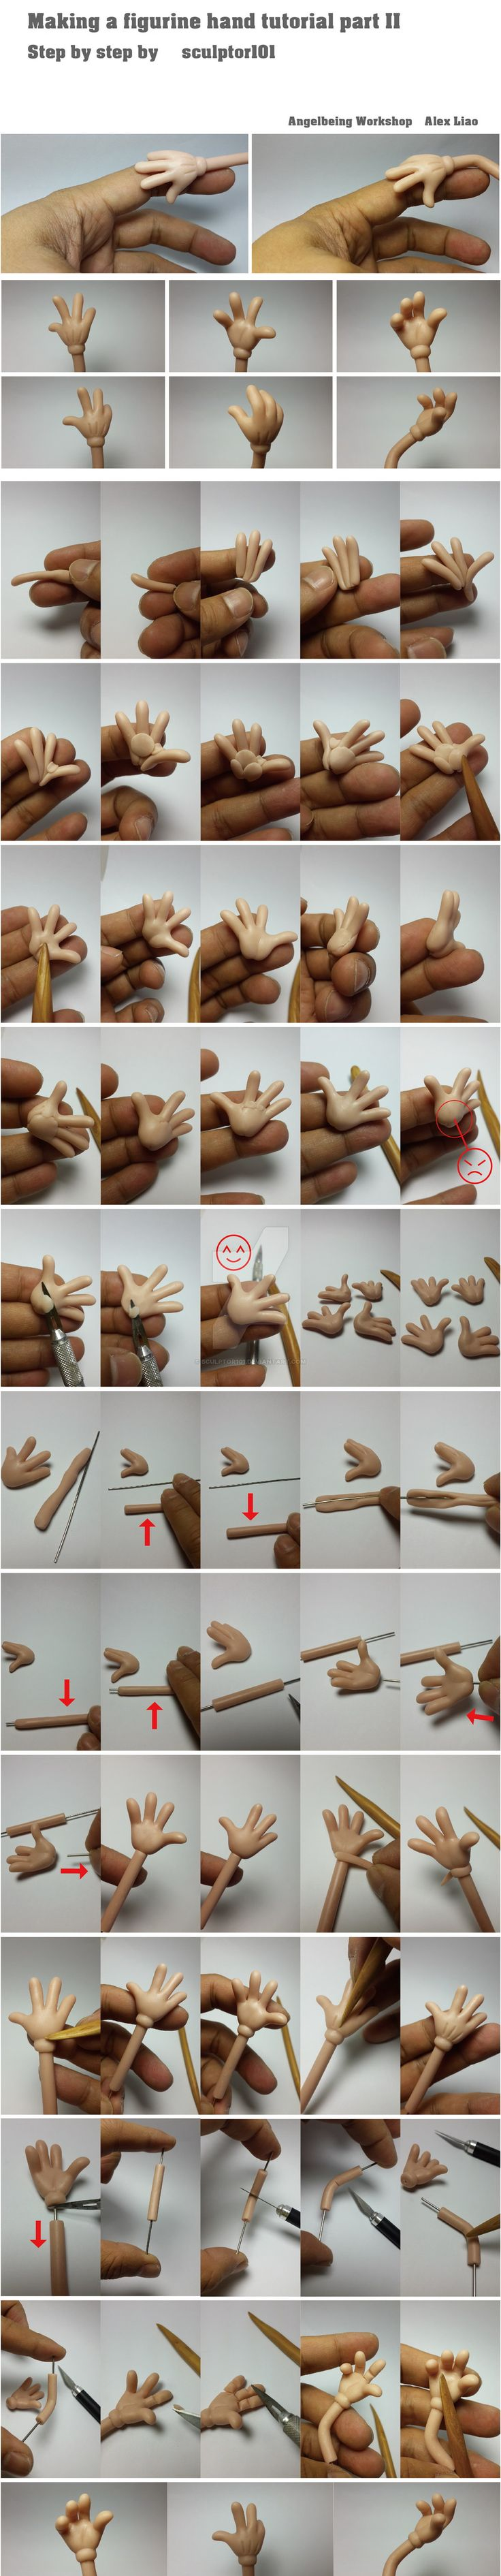 Making figurine hand tutorial part 2 by sculptor101 on DeviantArt via cgpin.com